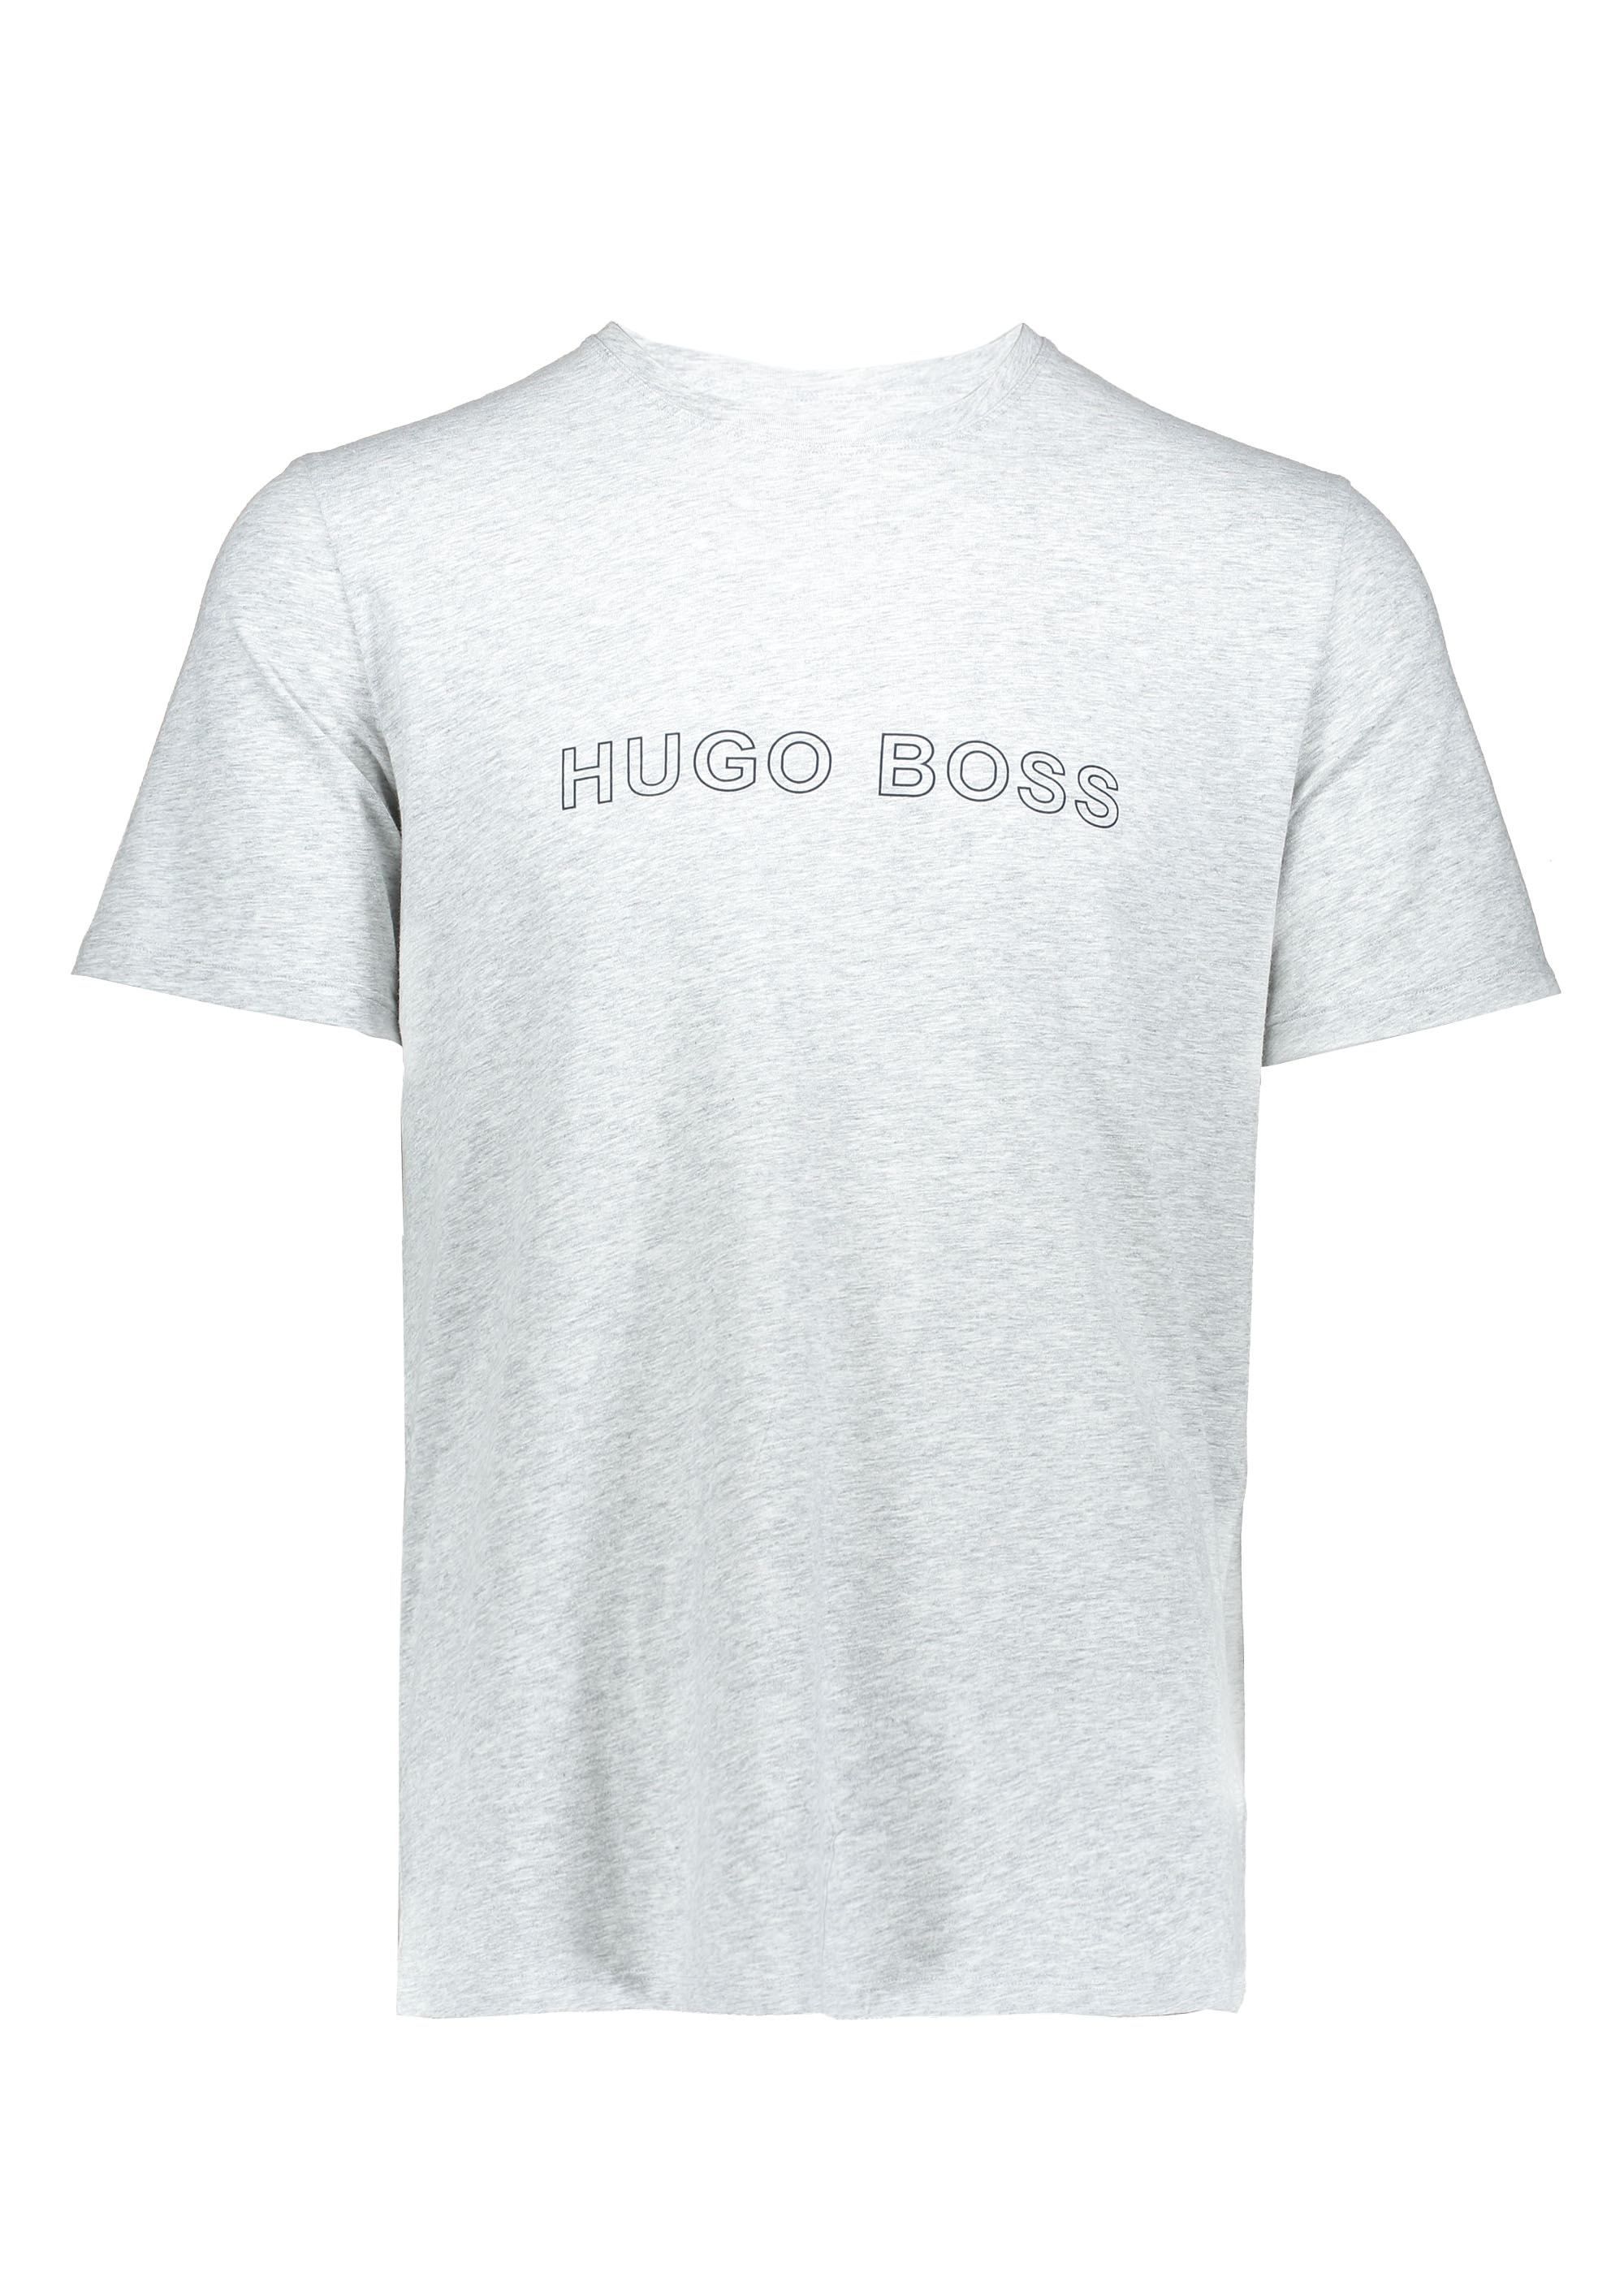 286ac2d2d BOSS Identity T-Shirt RN 032 - Medium Grey - T-shirts from Triads UK